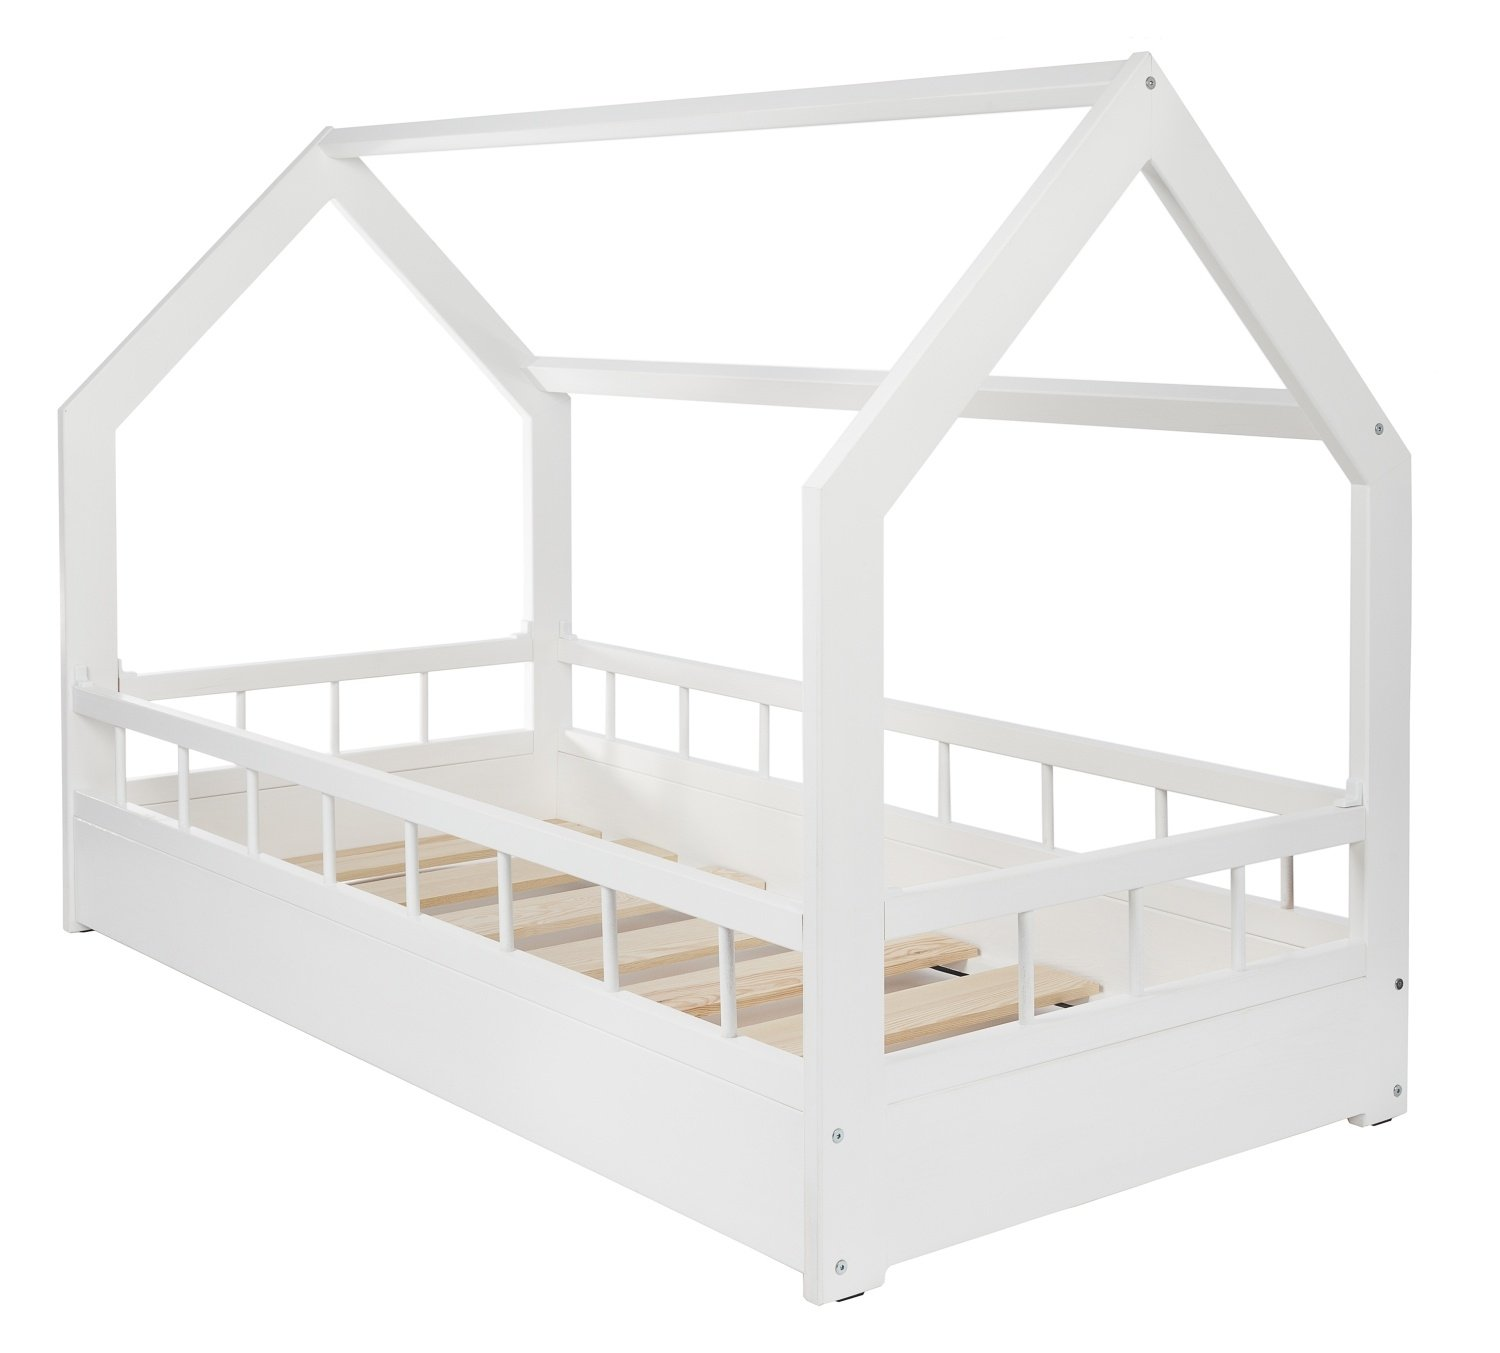 Velinda Wooden bed, Scandinavian style, modern, kids bed, home bed, 160x80+barriers (colour: white)